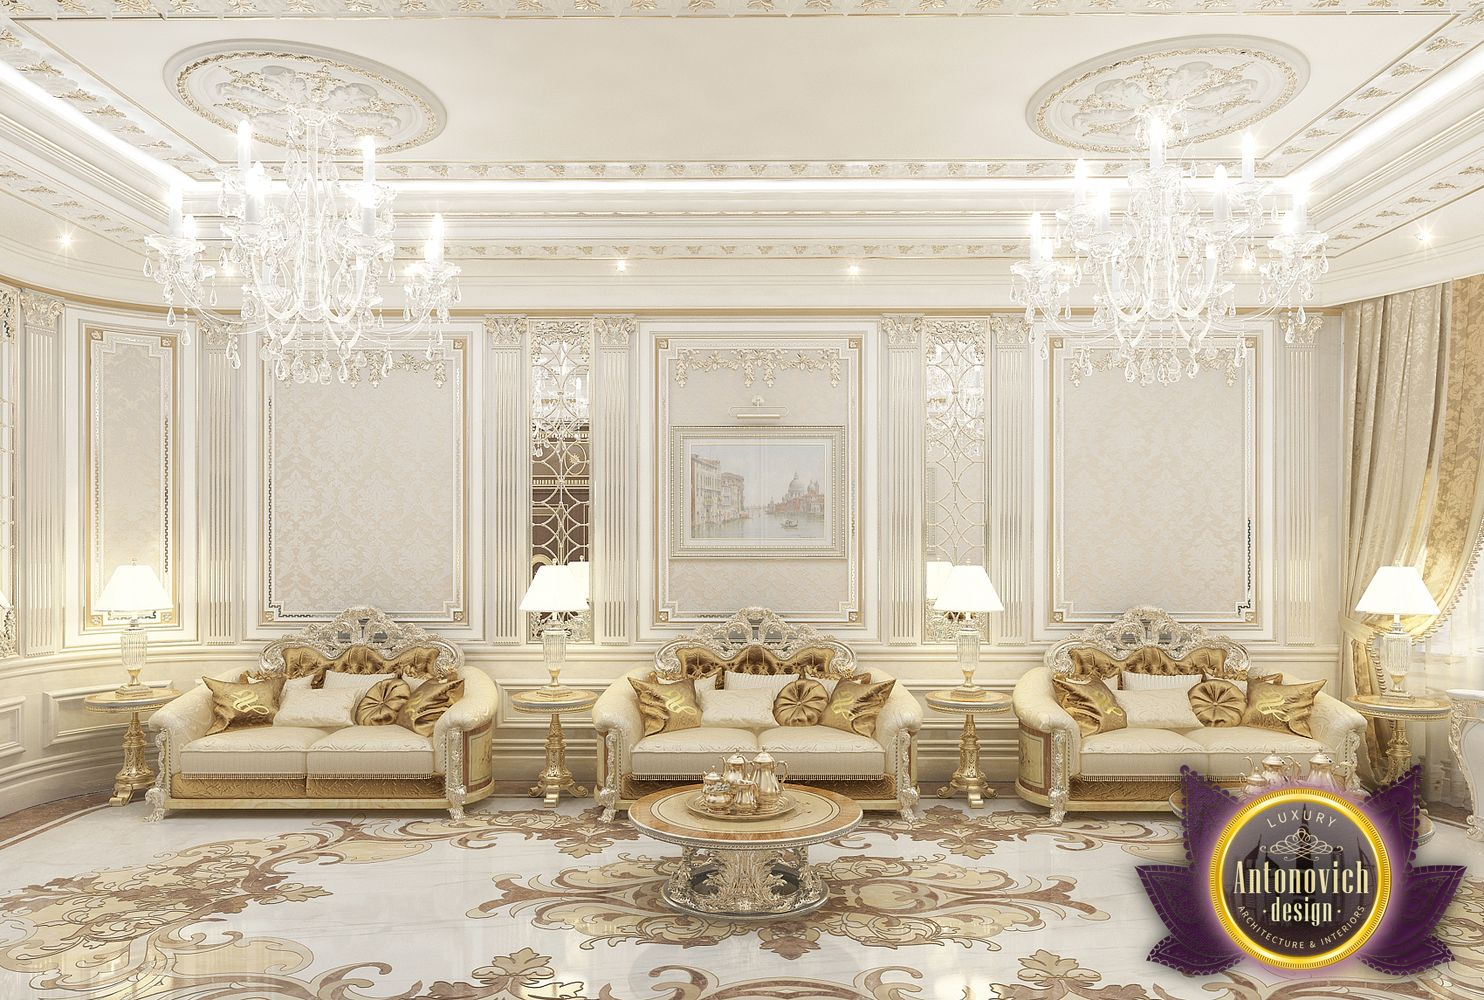 Luxury antonovich design uae living room interior design by luxury antonovich design - Interior desinge ...